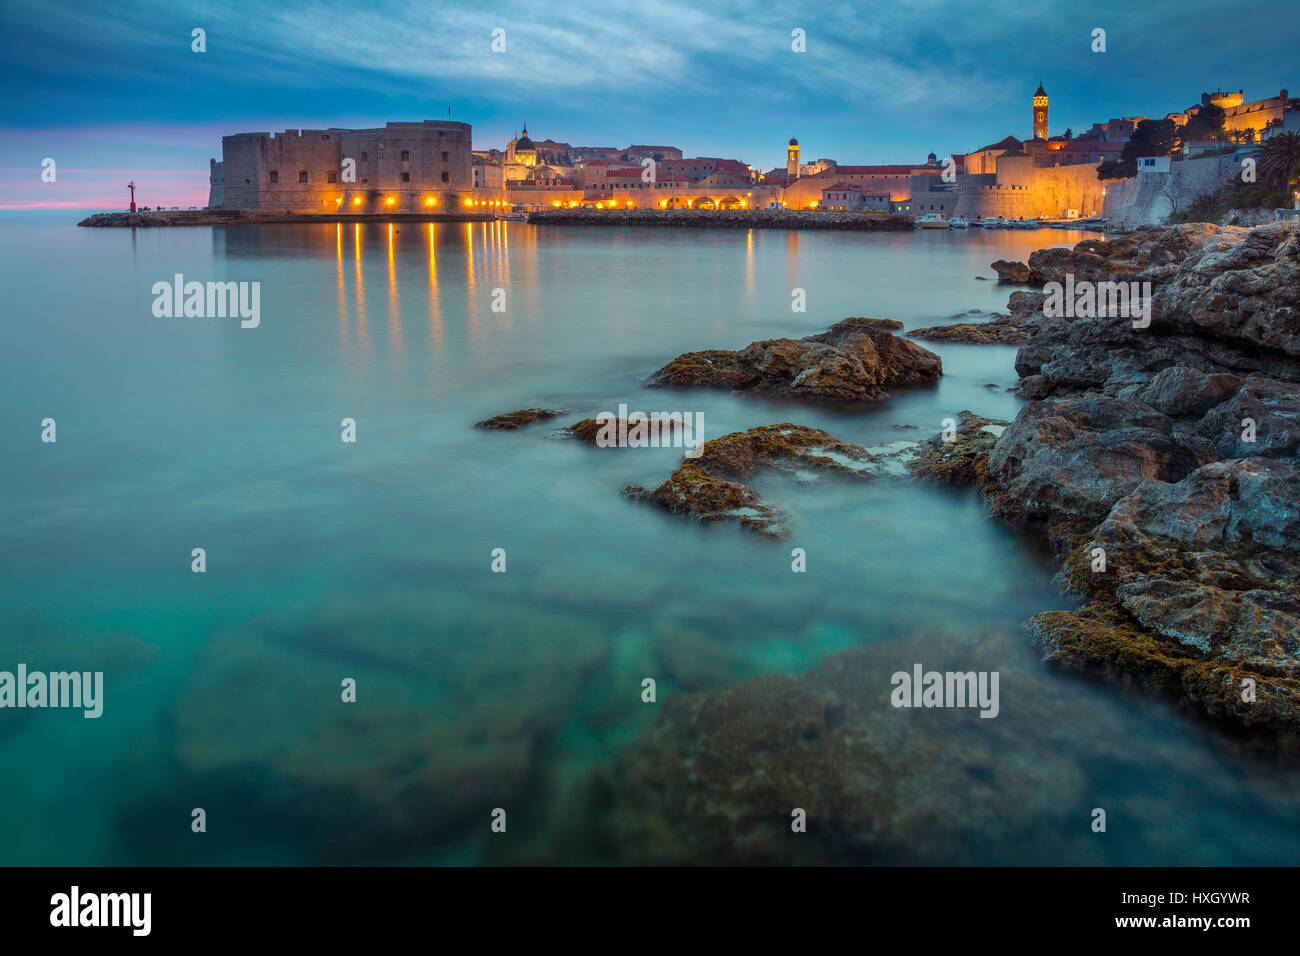 Dubrovnik, Croatia. Beautiful romantic old town of Dubrovnik during sunset. - Stock Image